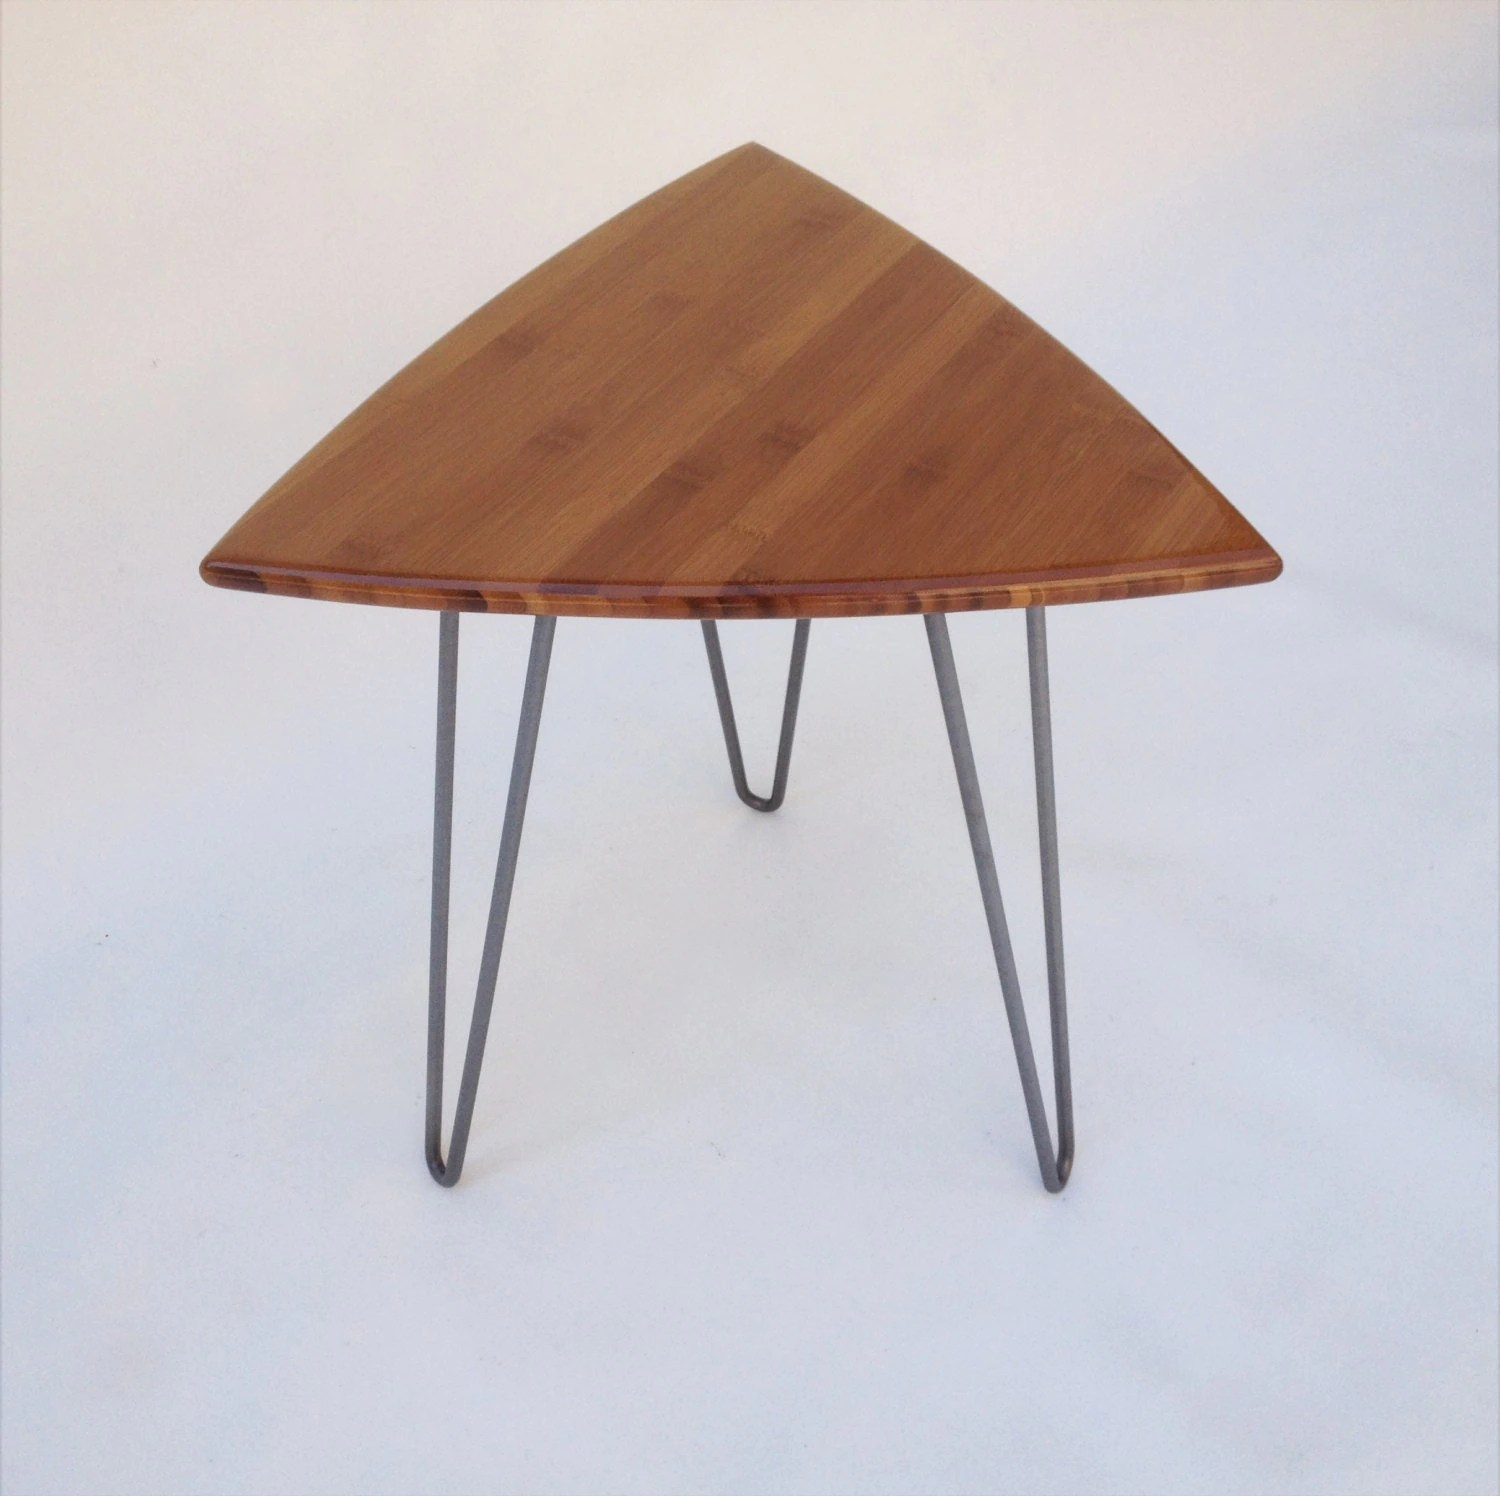 guitar shaped chair pottery barn slipcover reviews pick side table mid century modern triangle end